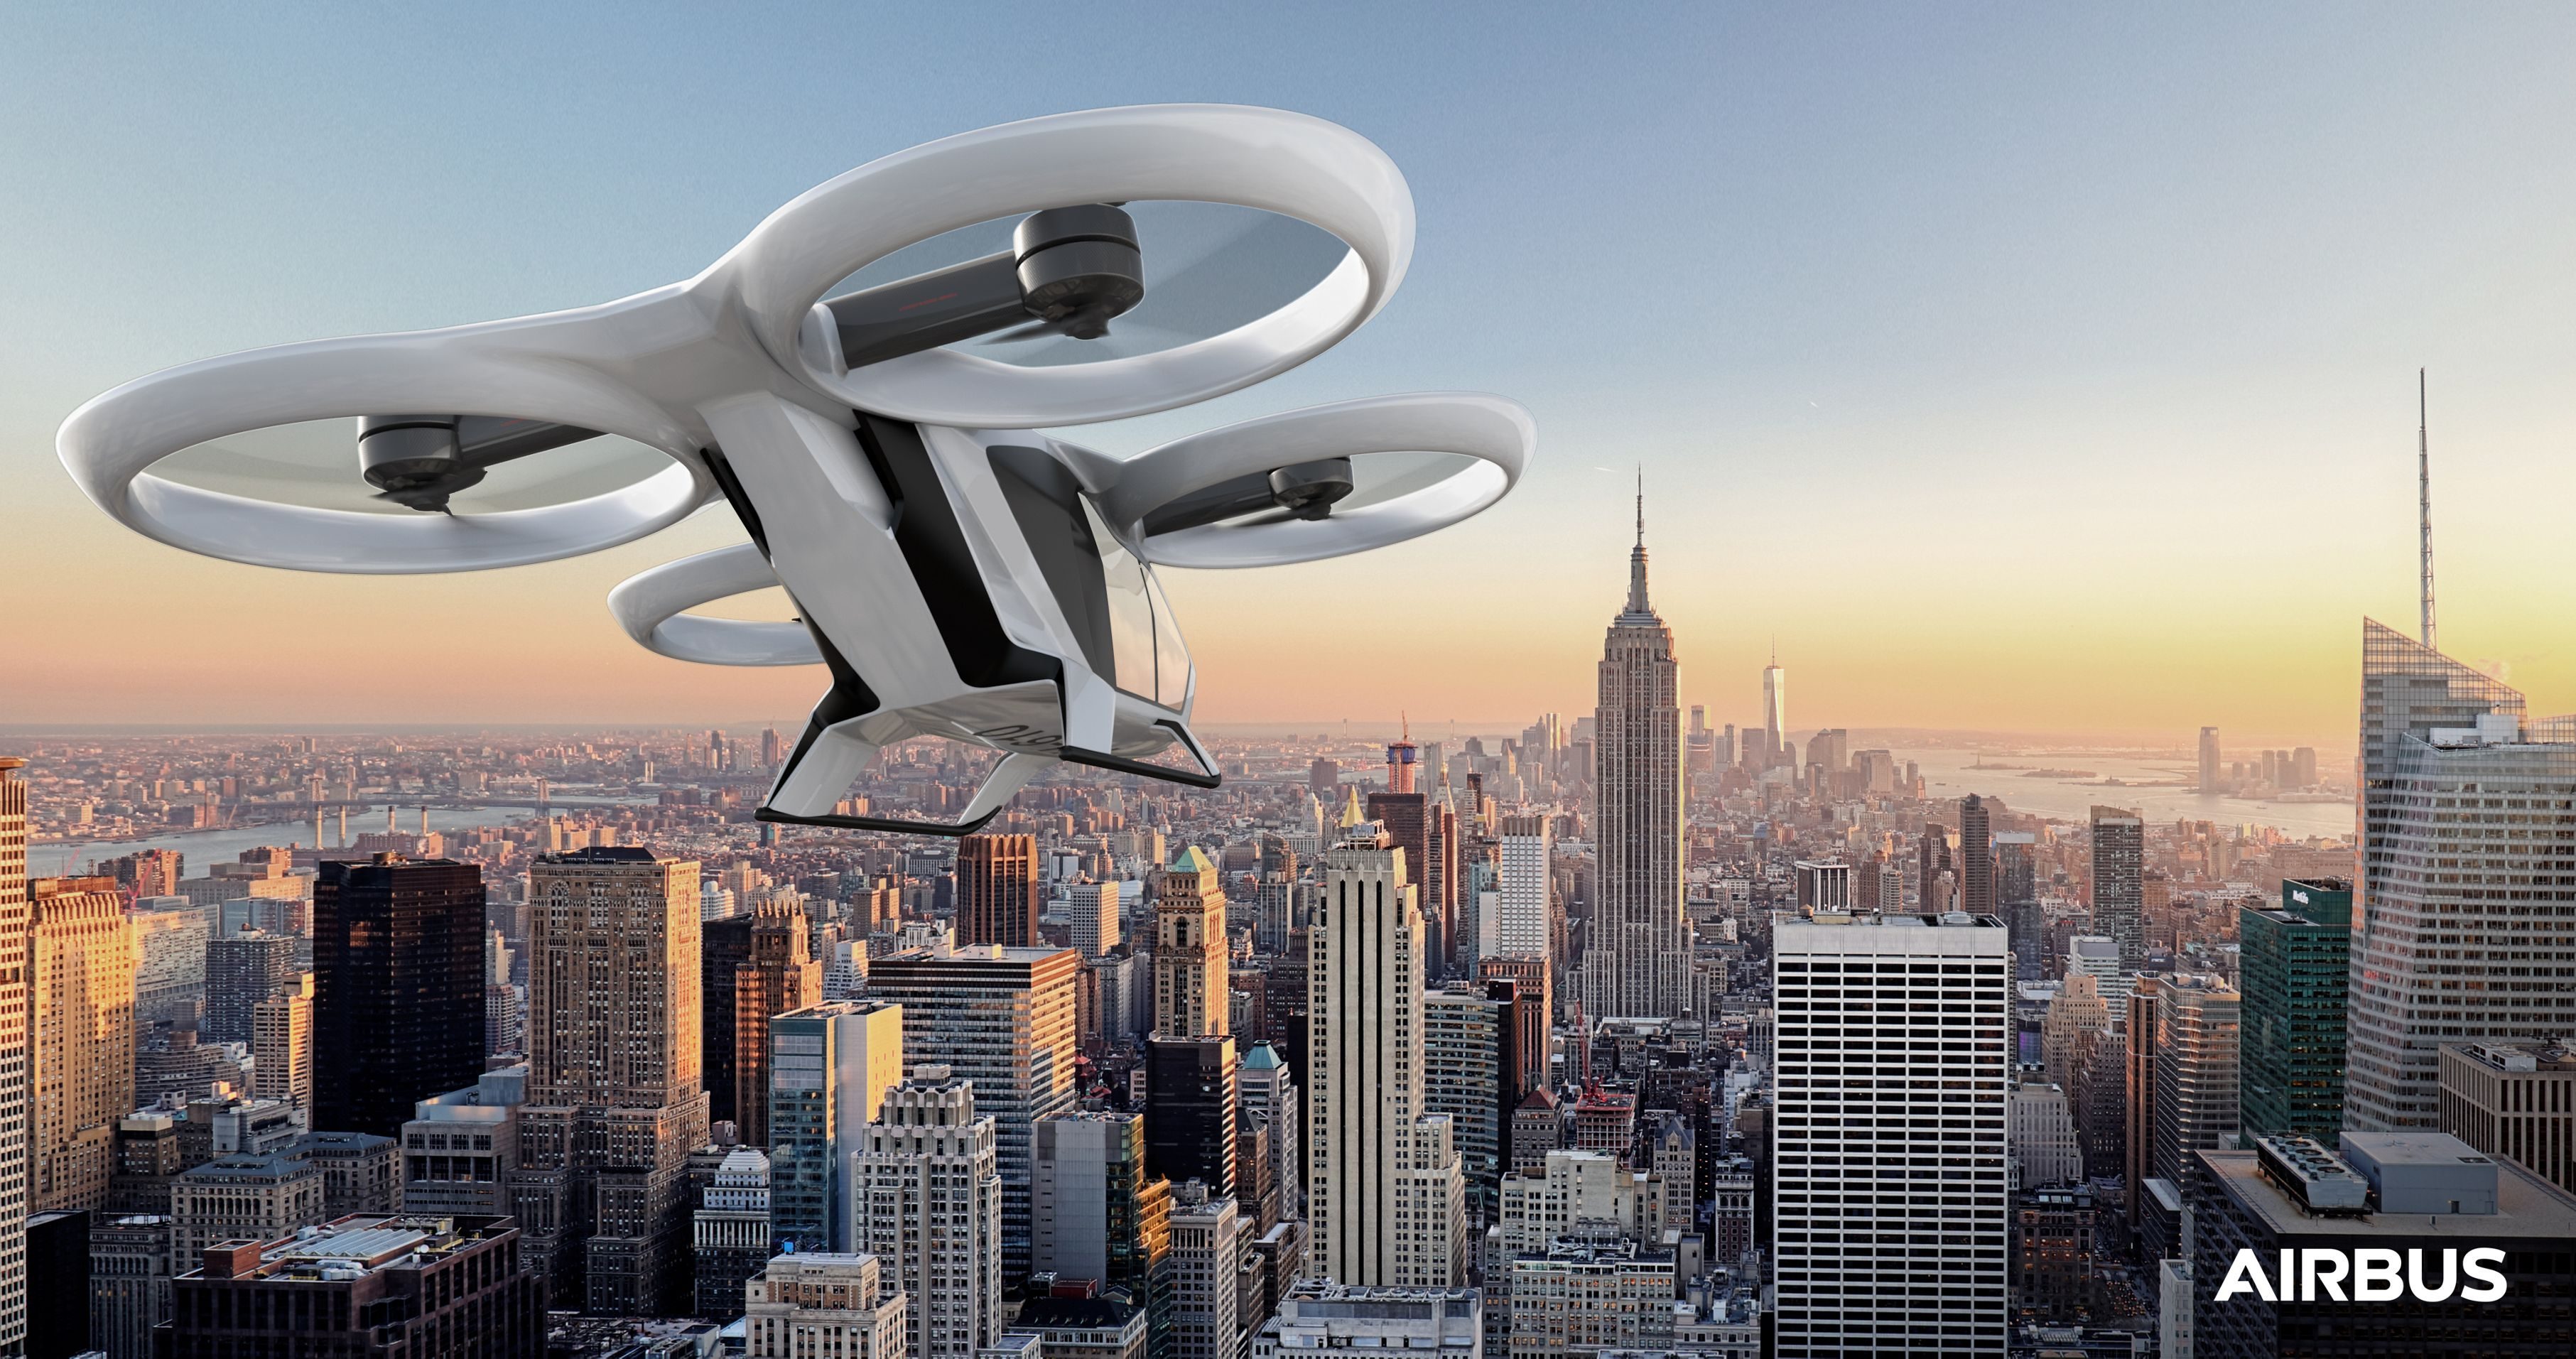 Passenger drones are here and Dubai is winning the sky ...